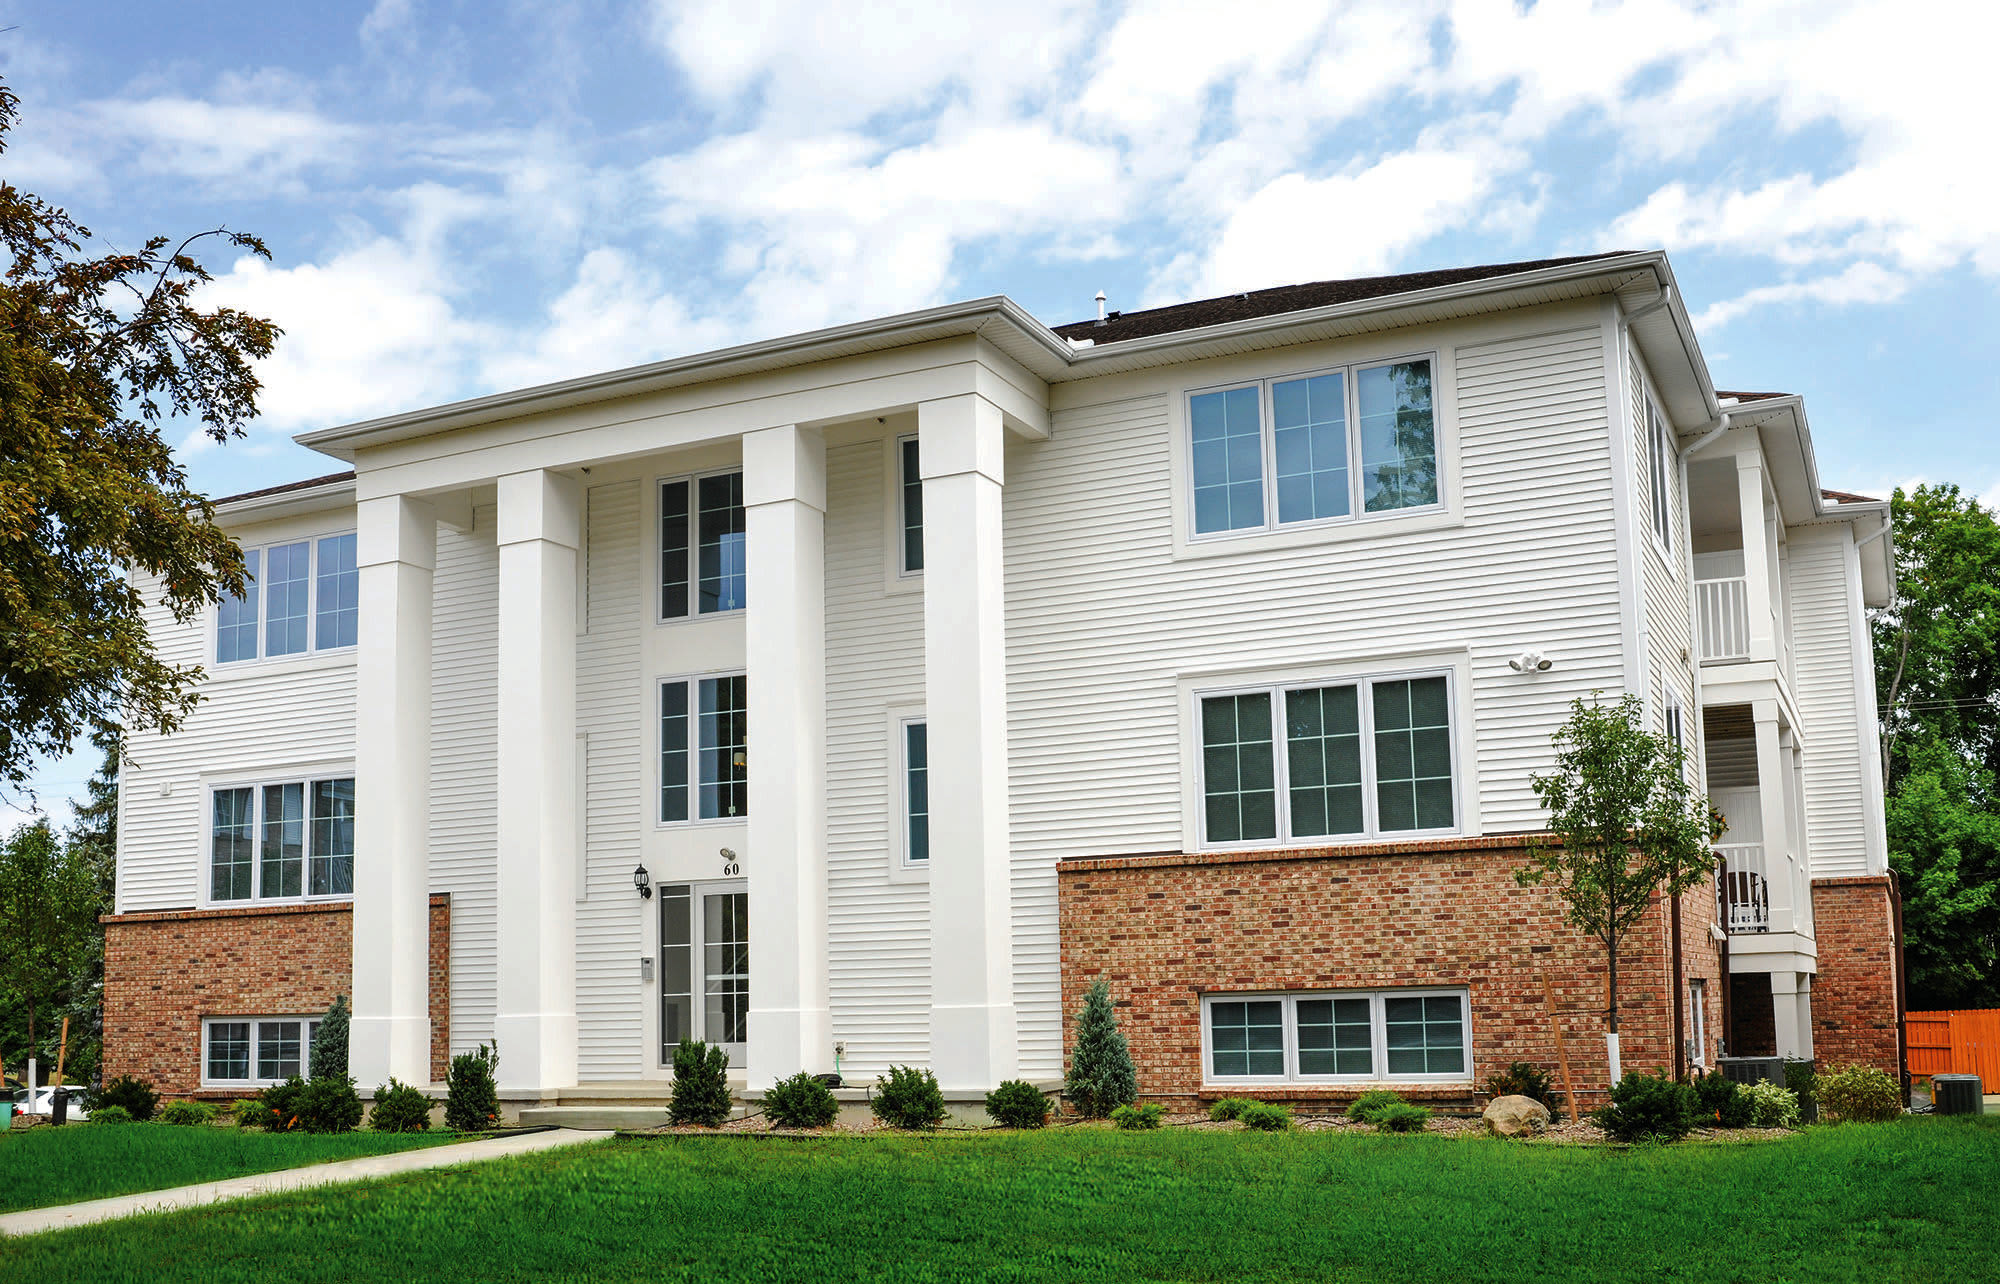 Apartments at Green Lake Apartments & Townhomes in Orchard Park, New York